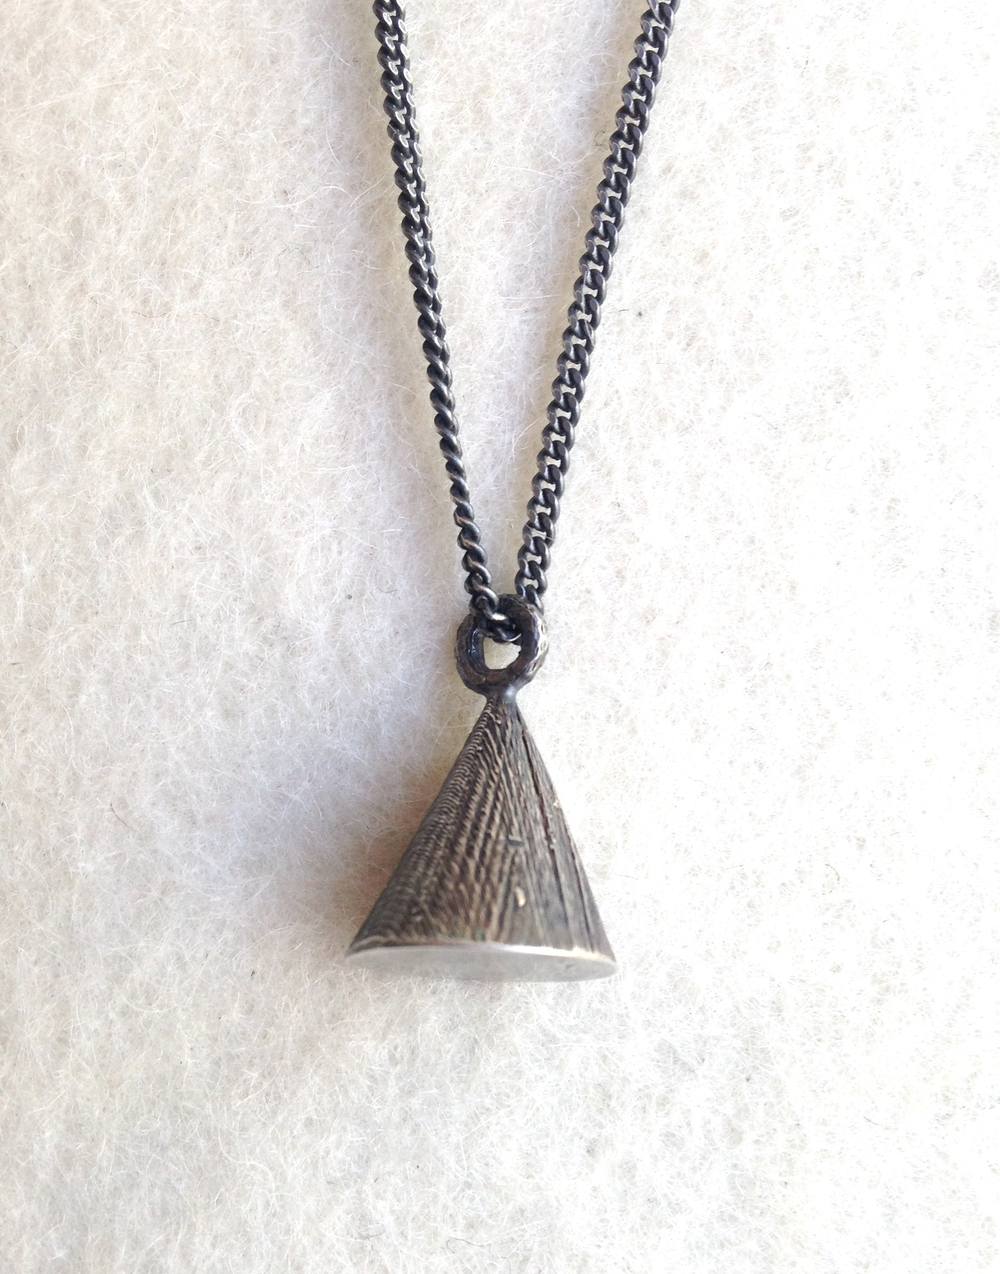 Silver Talisman Cone Necklace